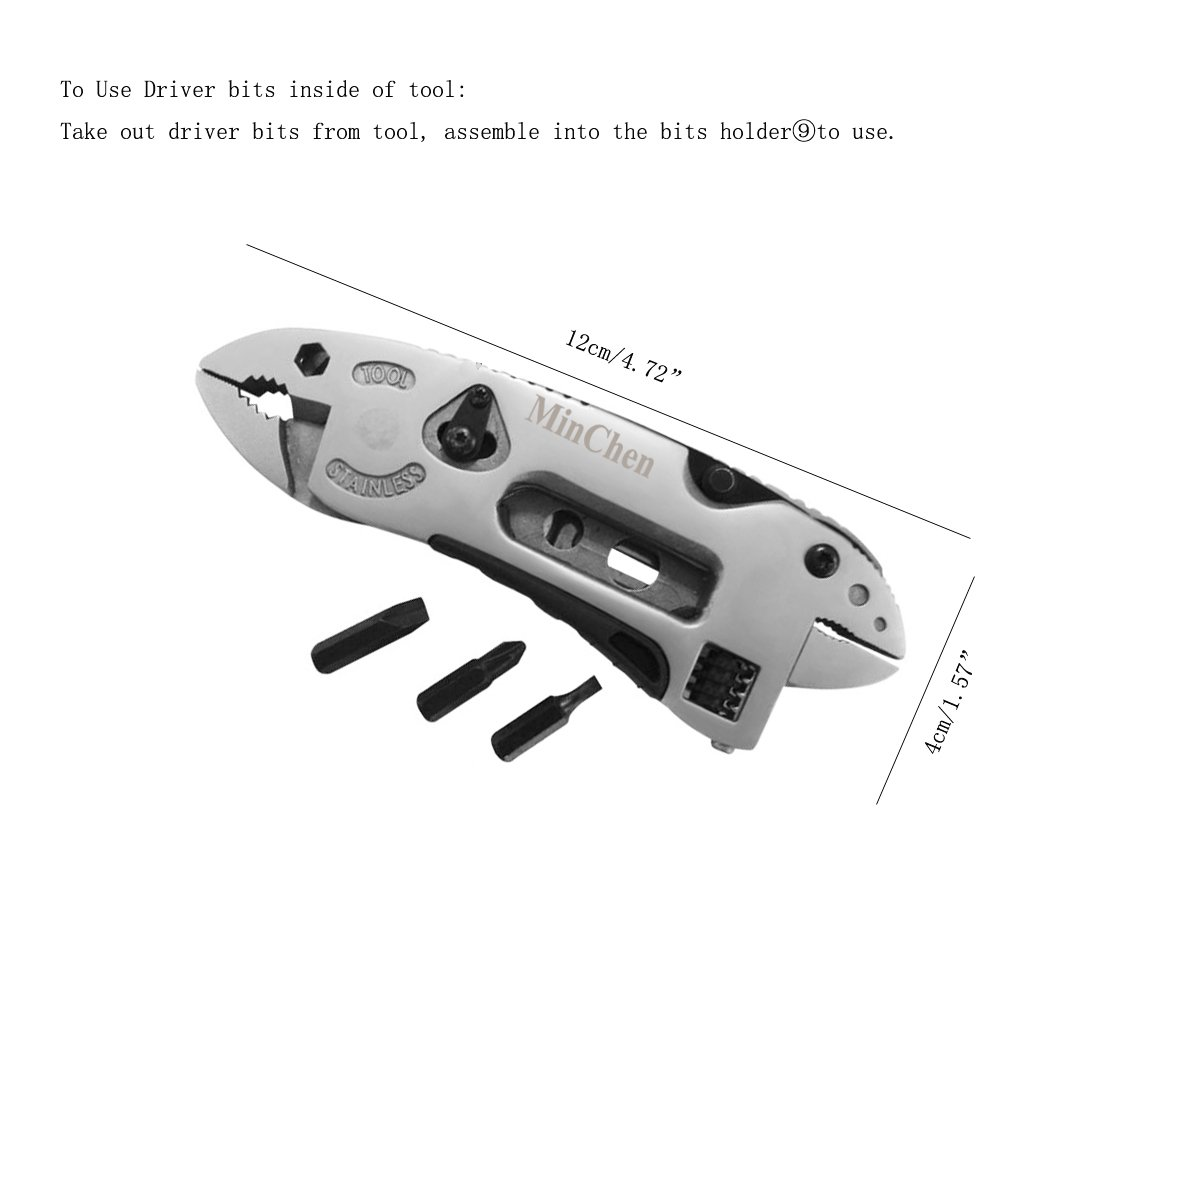 MinChen Wrench Multi-Purpose Handy Tool New Multitool with Pliers Wire cutter Adjustable Wrench Outdoor Knife with Multi-tool Pliers & Spanner by MinChen (Image #3)